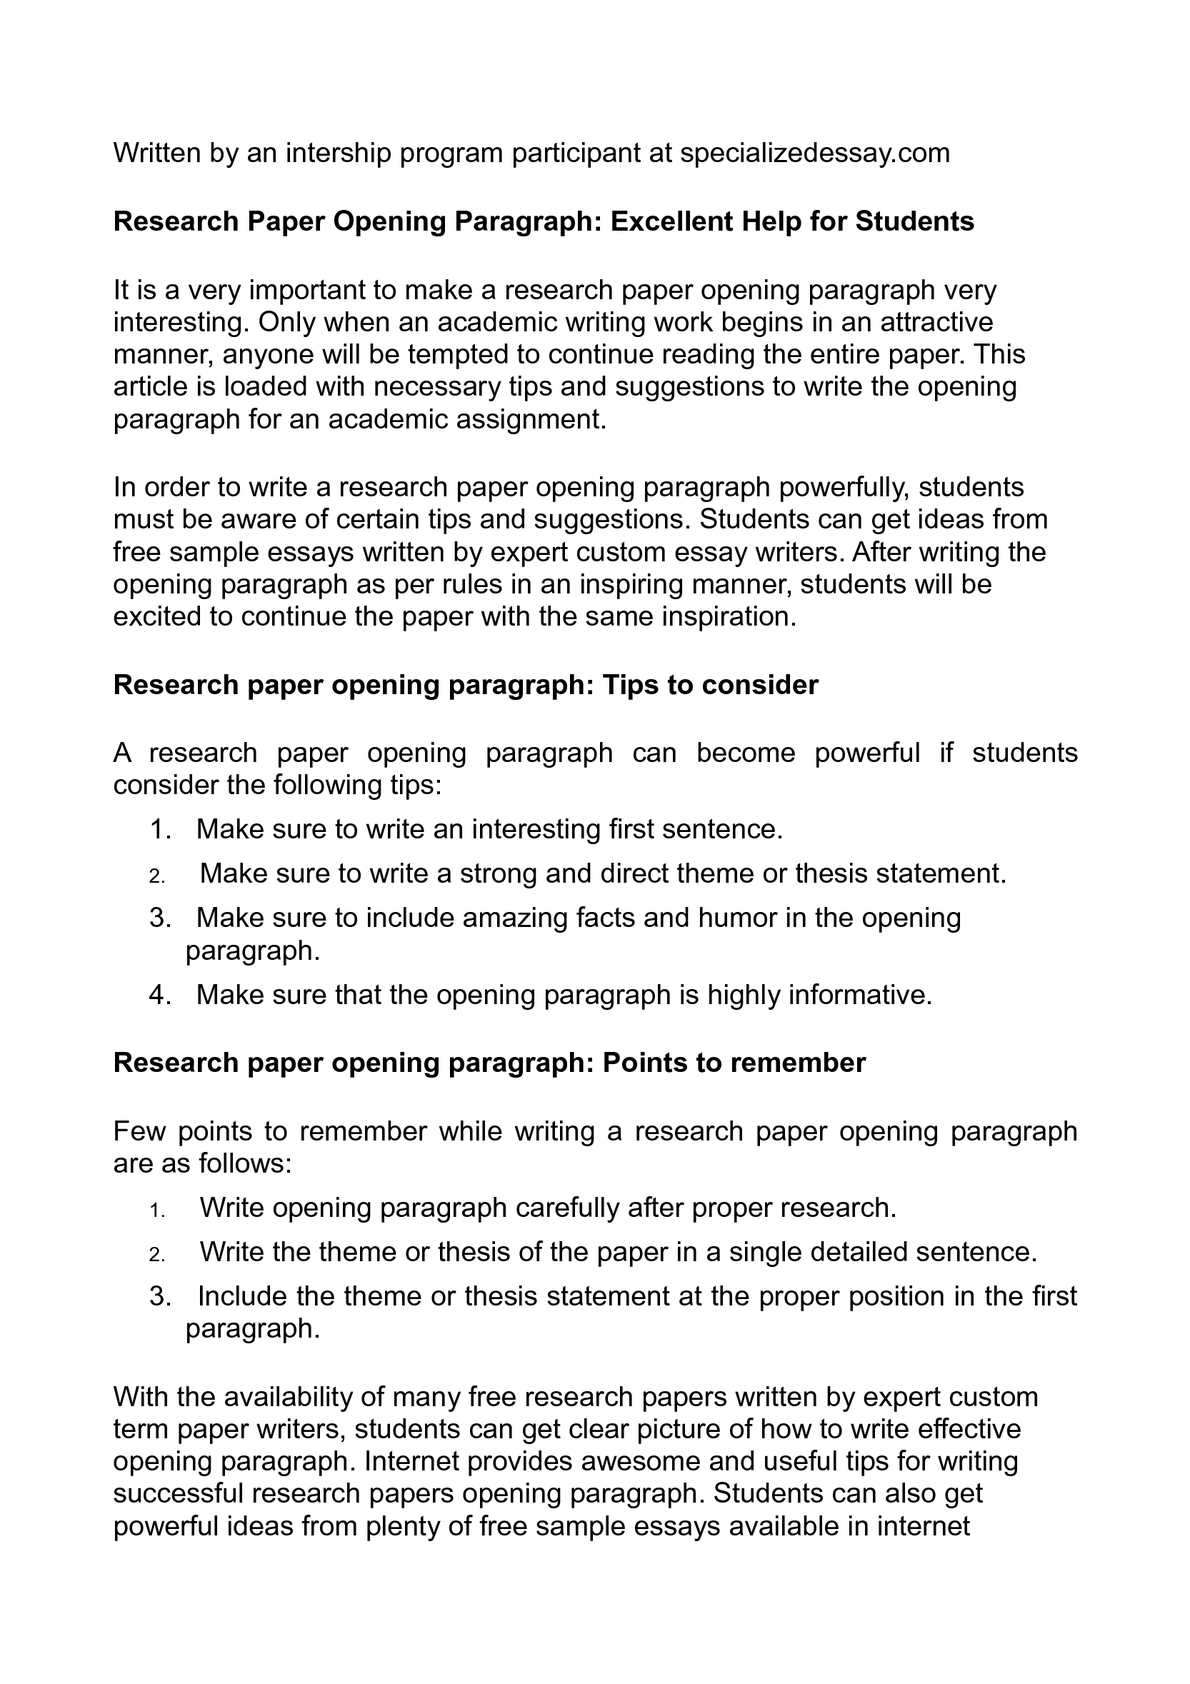 009 How To Make An Introduction Paragraph Of Research Paper Unforgettable A Writing For Full